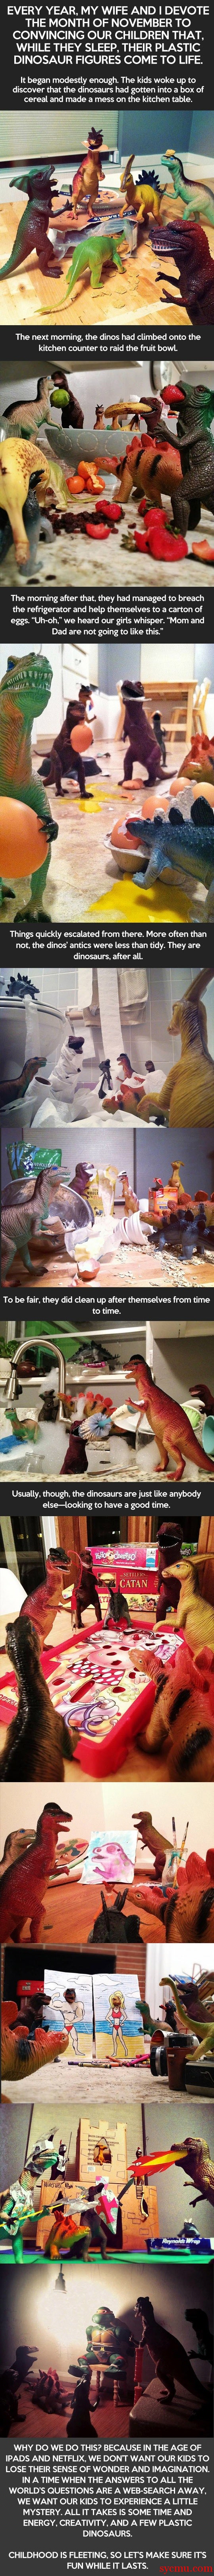 Children Dinosaurs coming to life